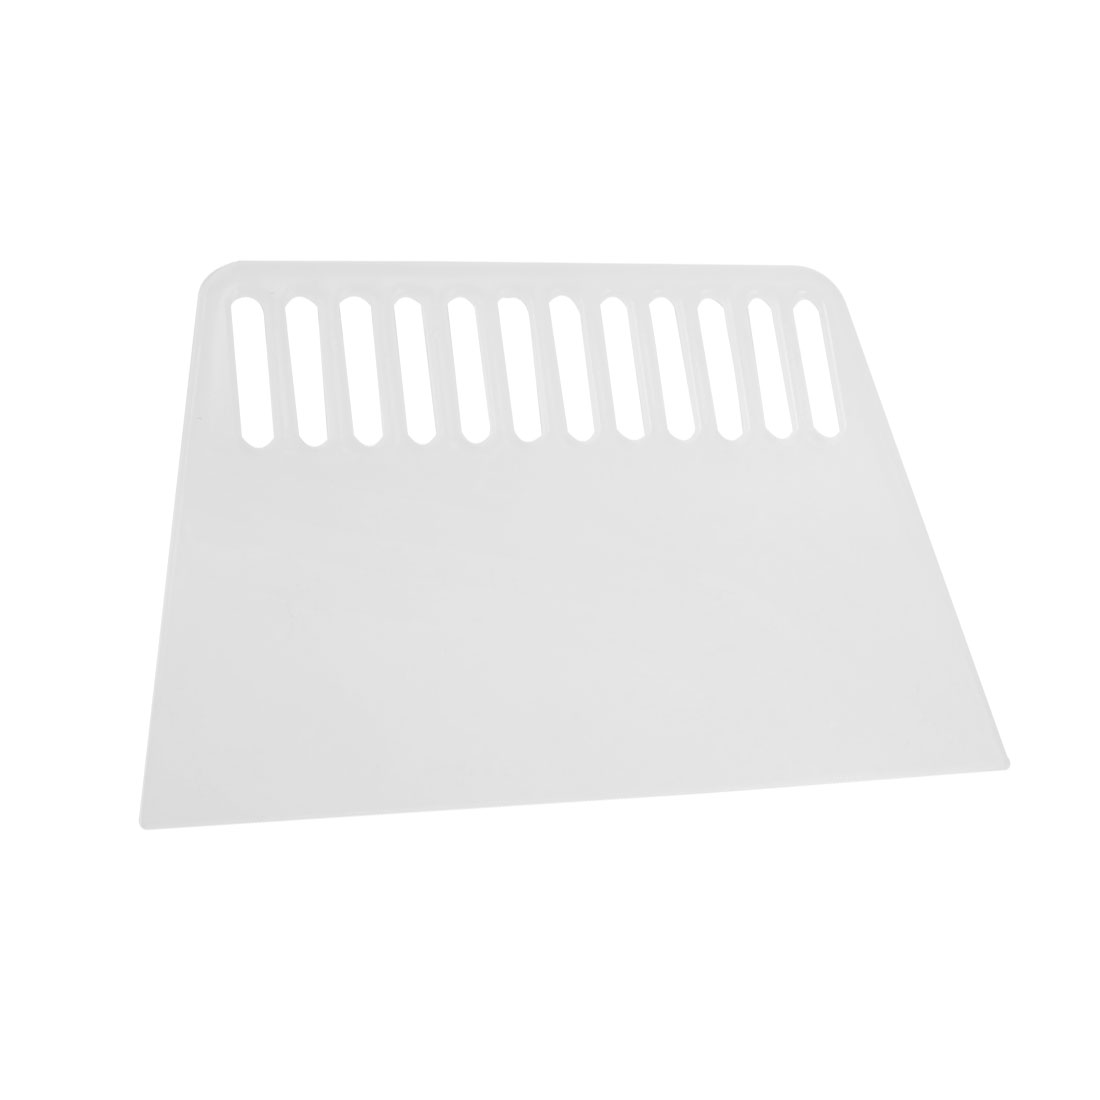 "Clear White Plastic Perforating Wall Paint Scraper Scraping Cutter 7.2"" Length"